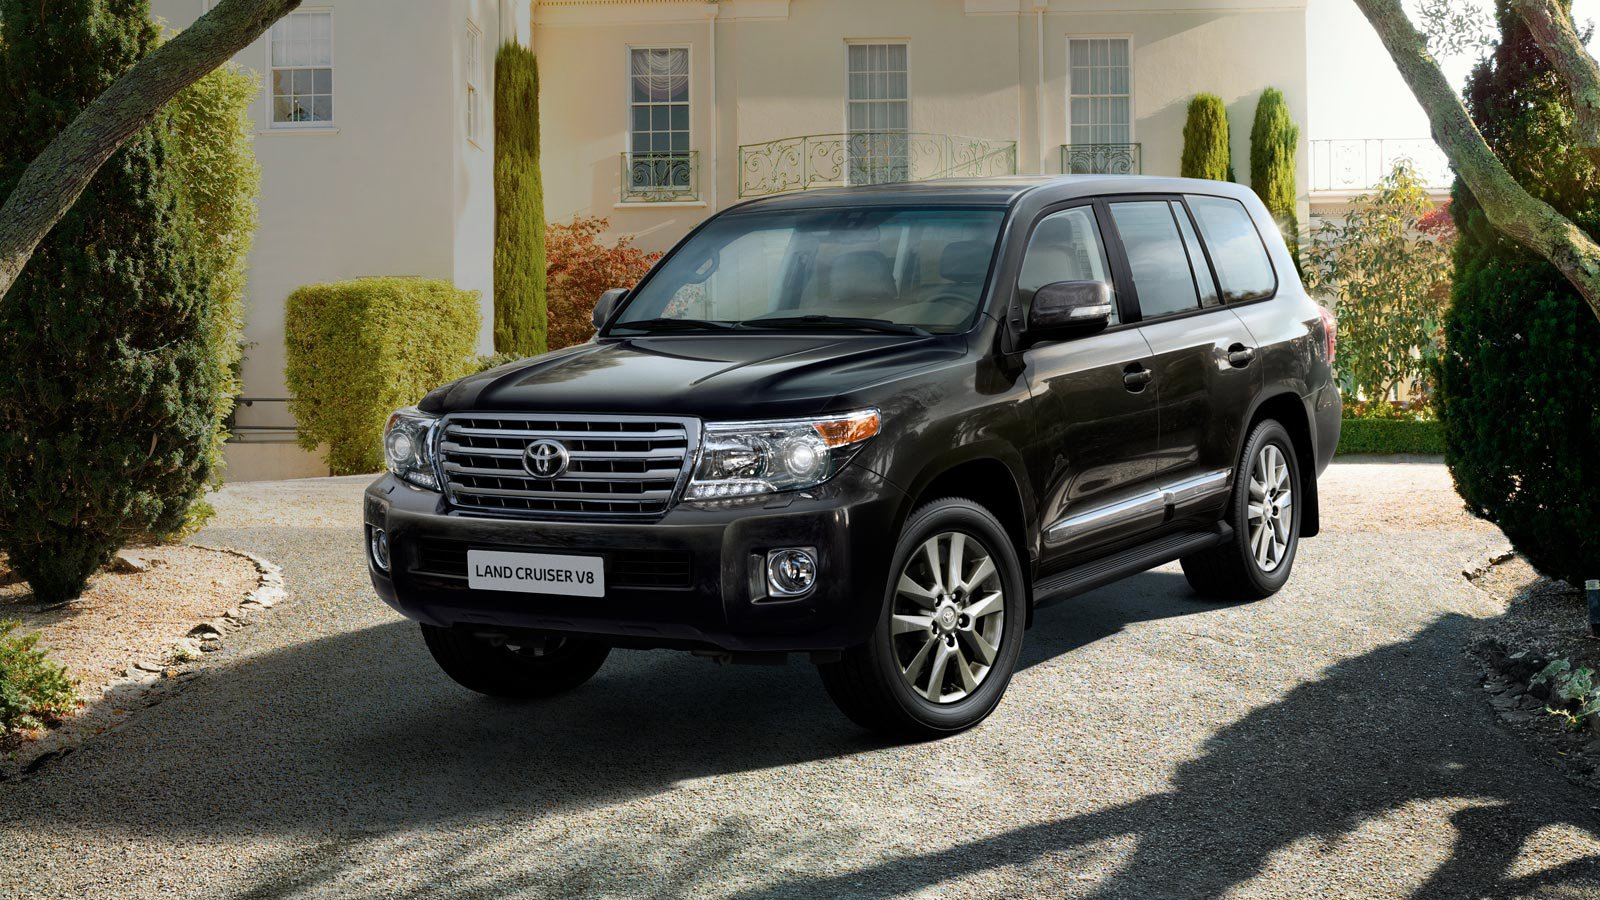 the land cruiser v8 story 4x4 cars toyota uk. Black Bedroom Furniture Sets. Home Design Ideas